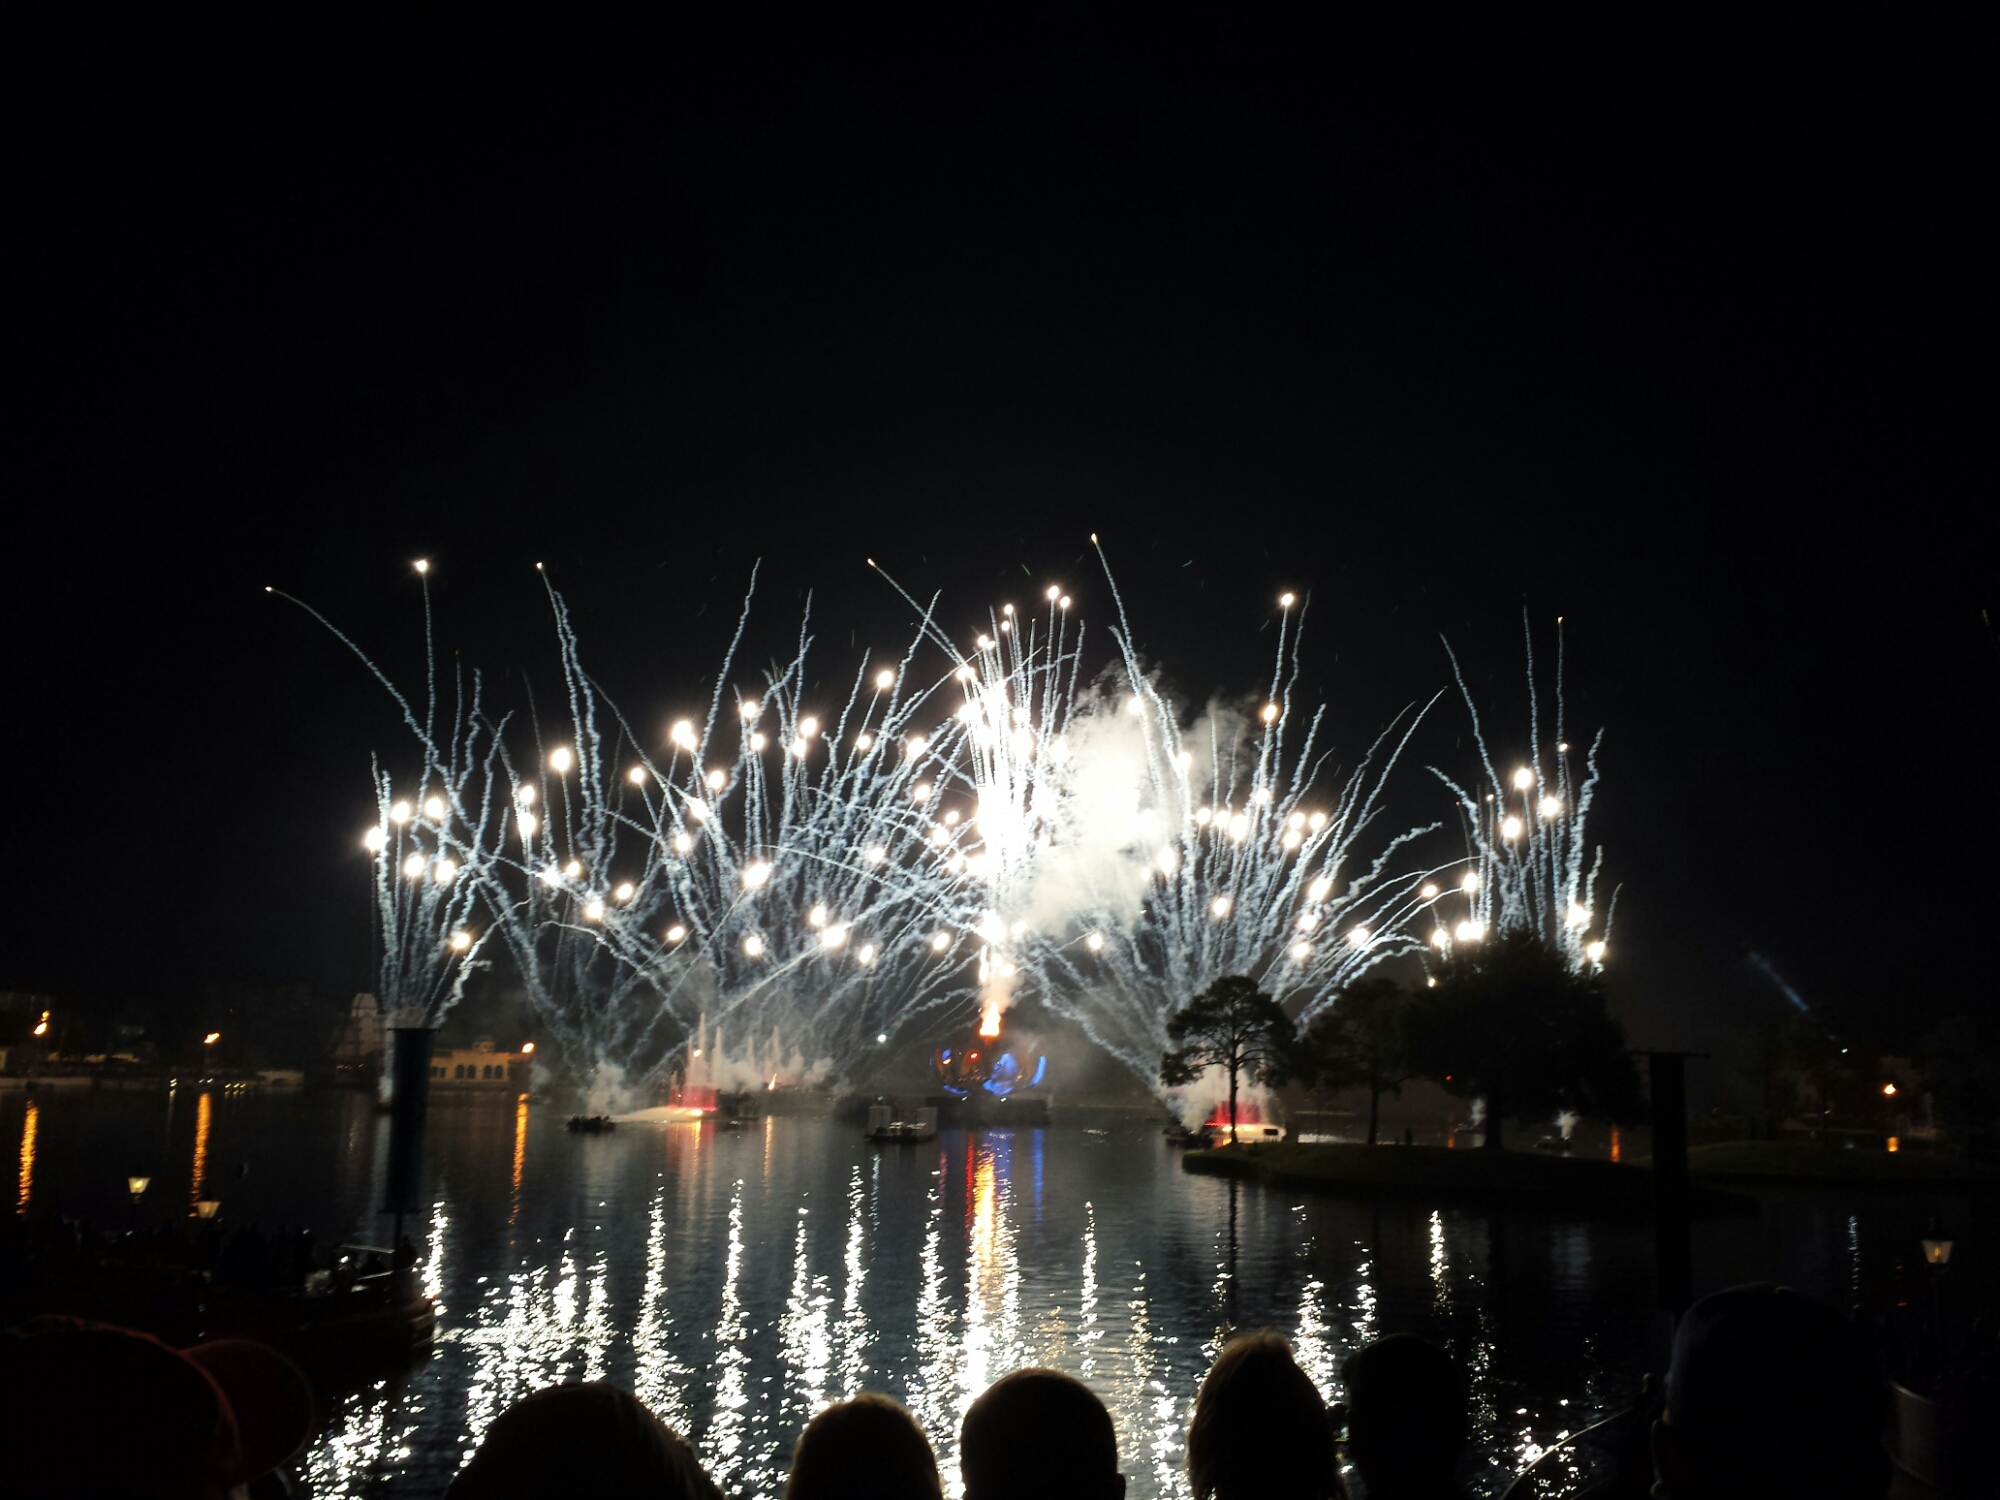 Illuminations Reflections of Earth finale at #Epcot